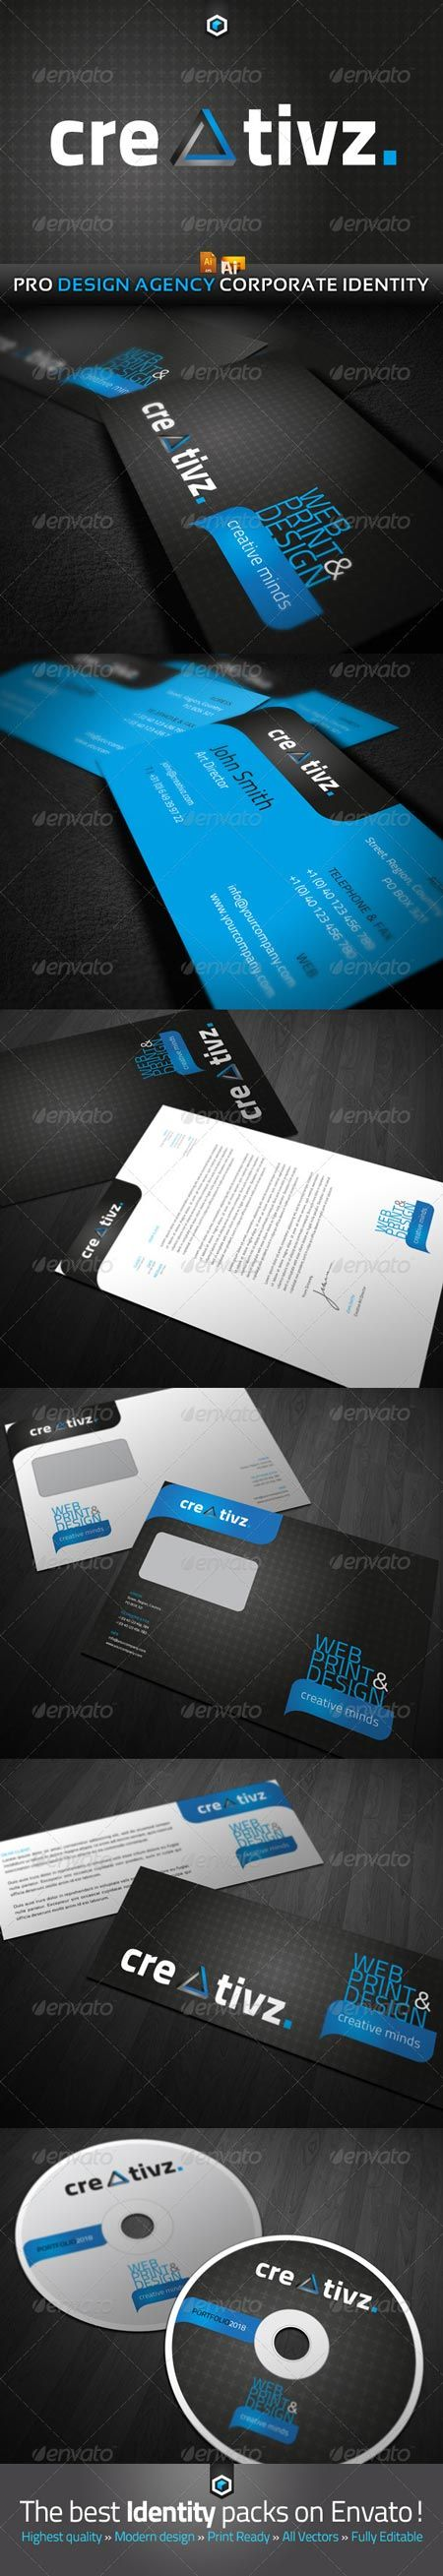 GraphicRiver RW Creativz Design Agency Corporate Identity 409153